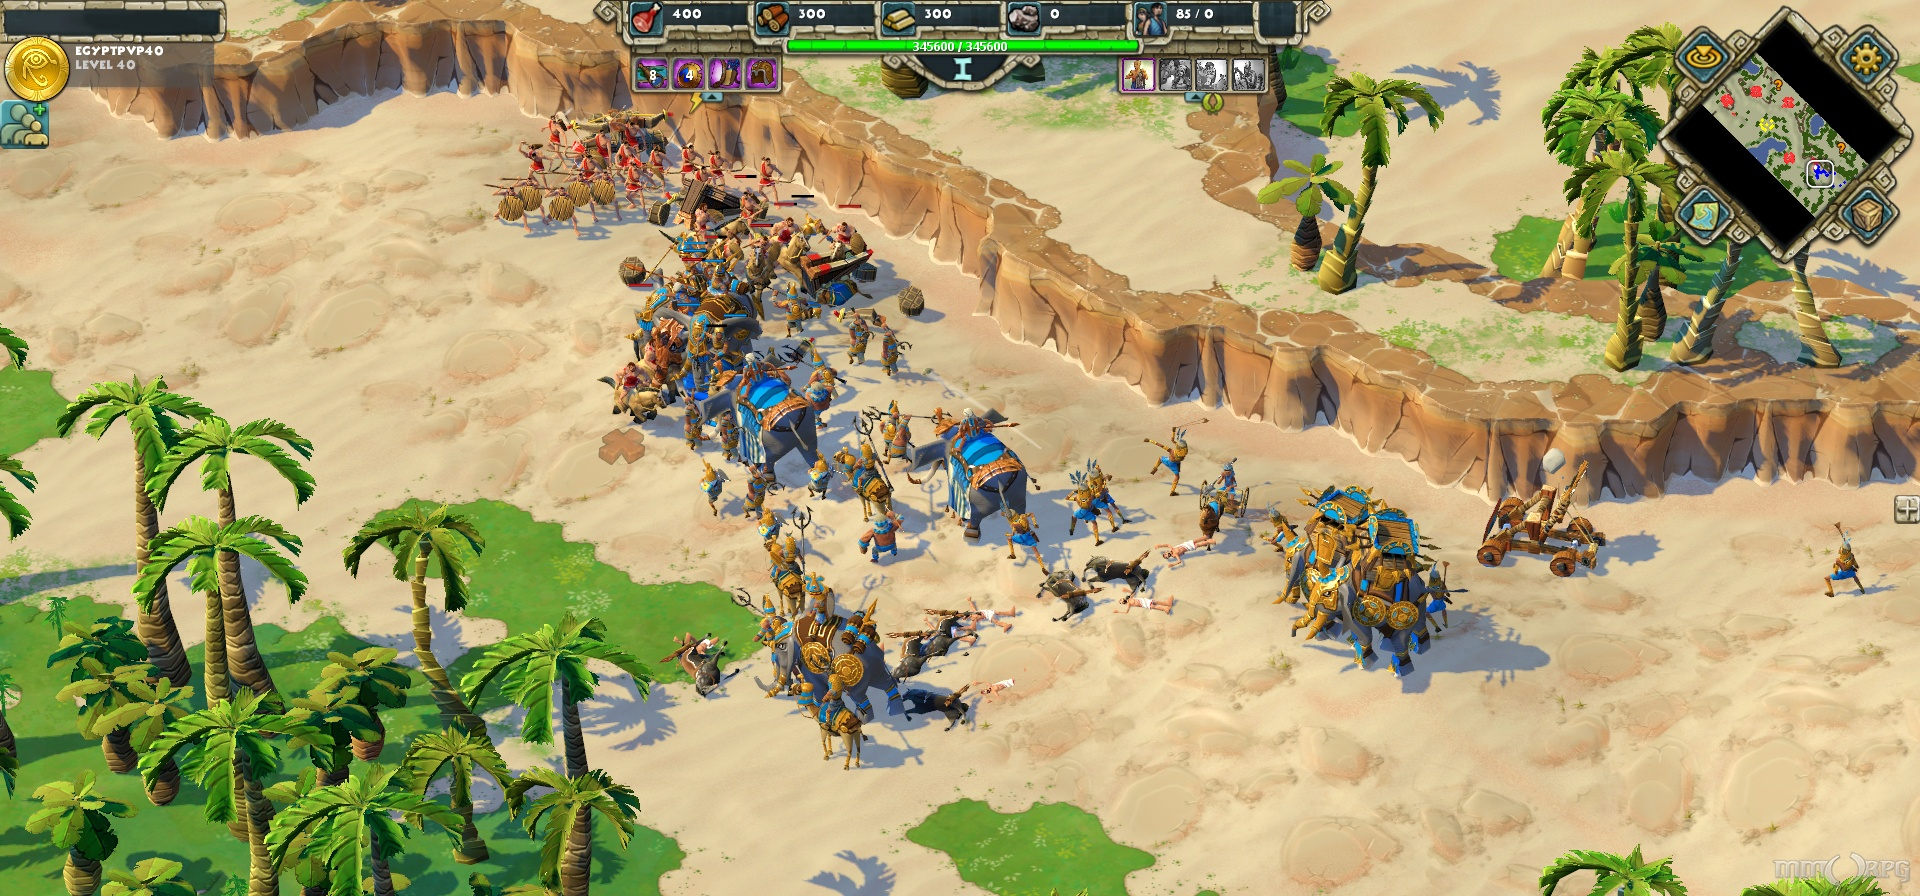 Age of Empires Online screenshot May 10, 2011